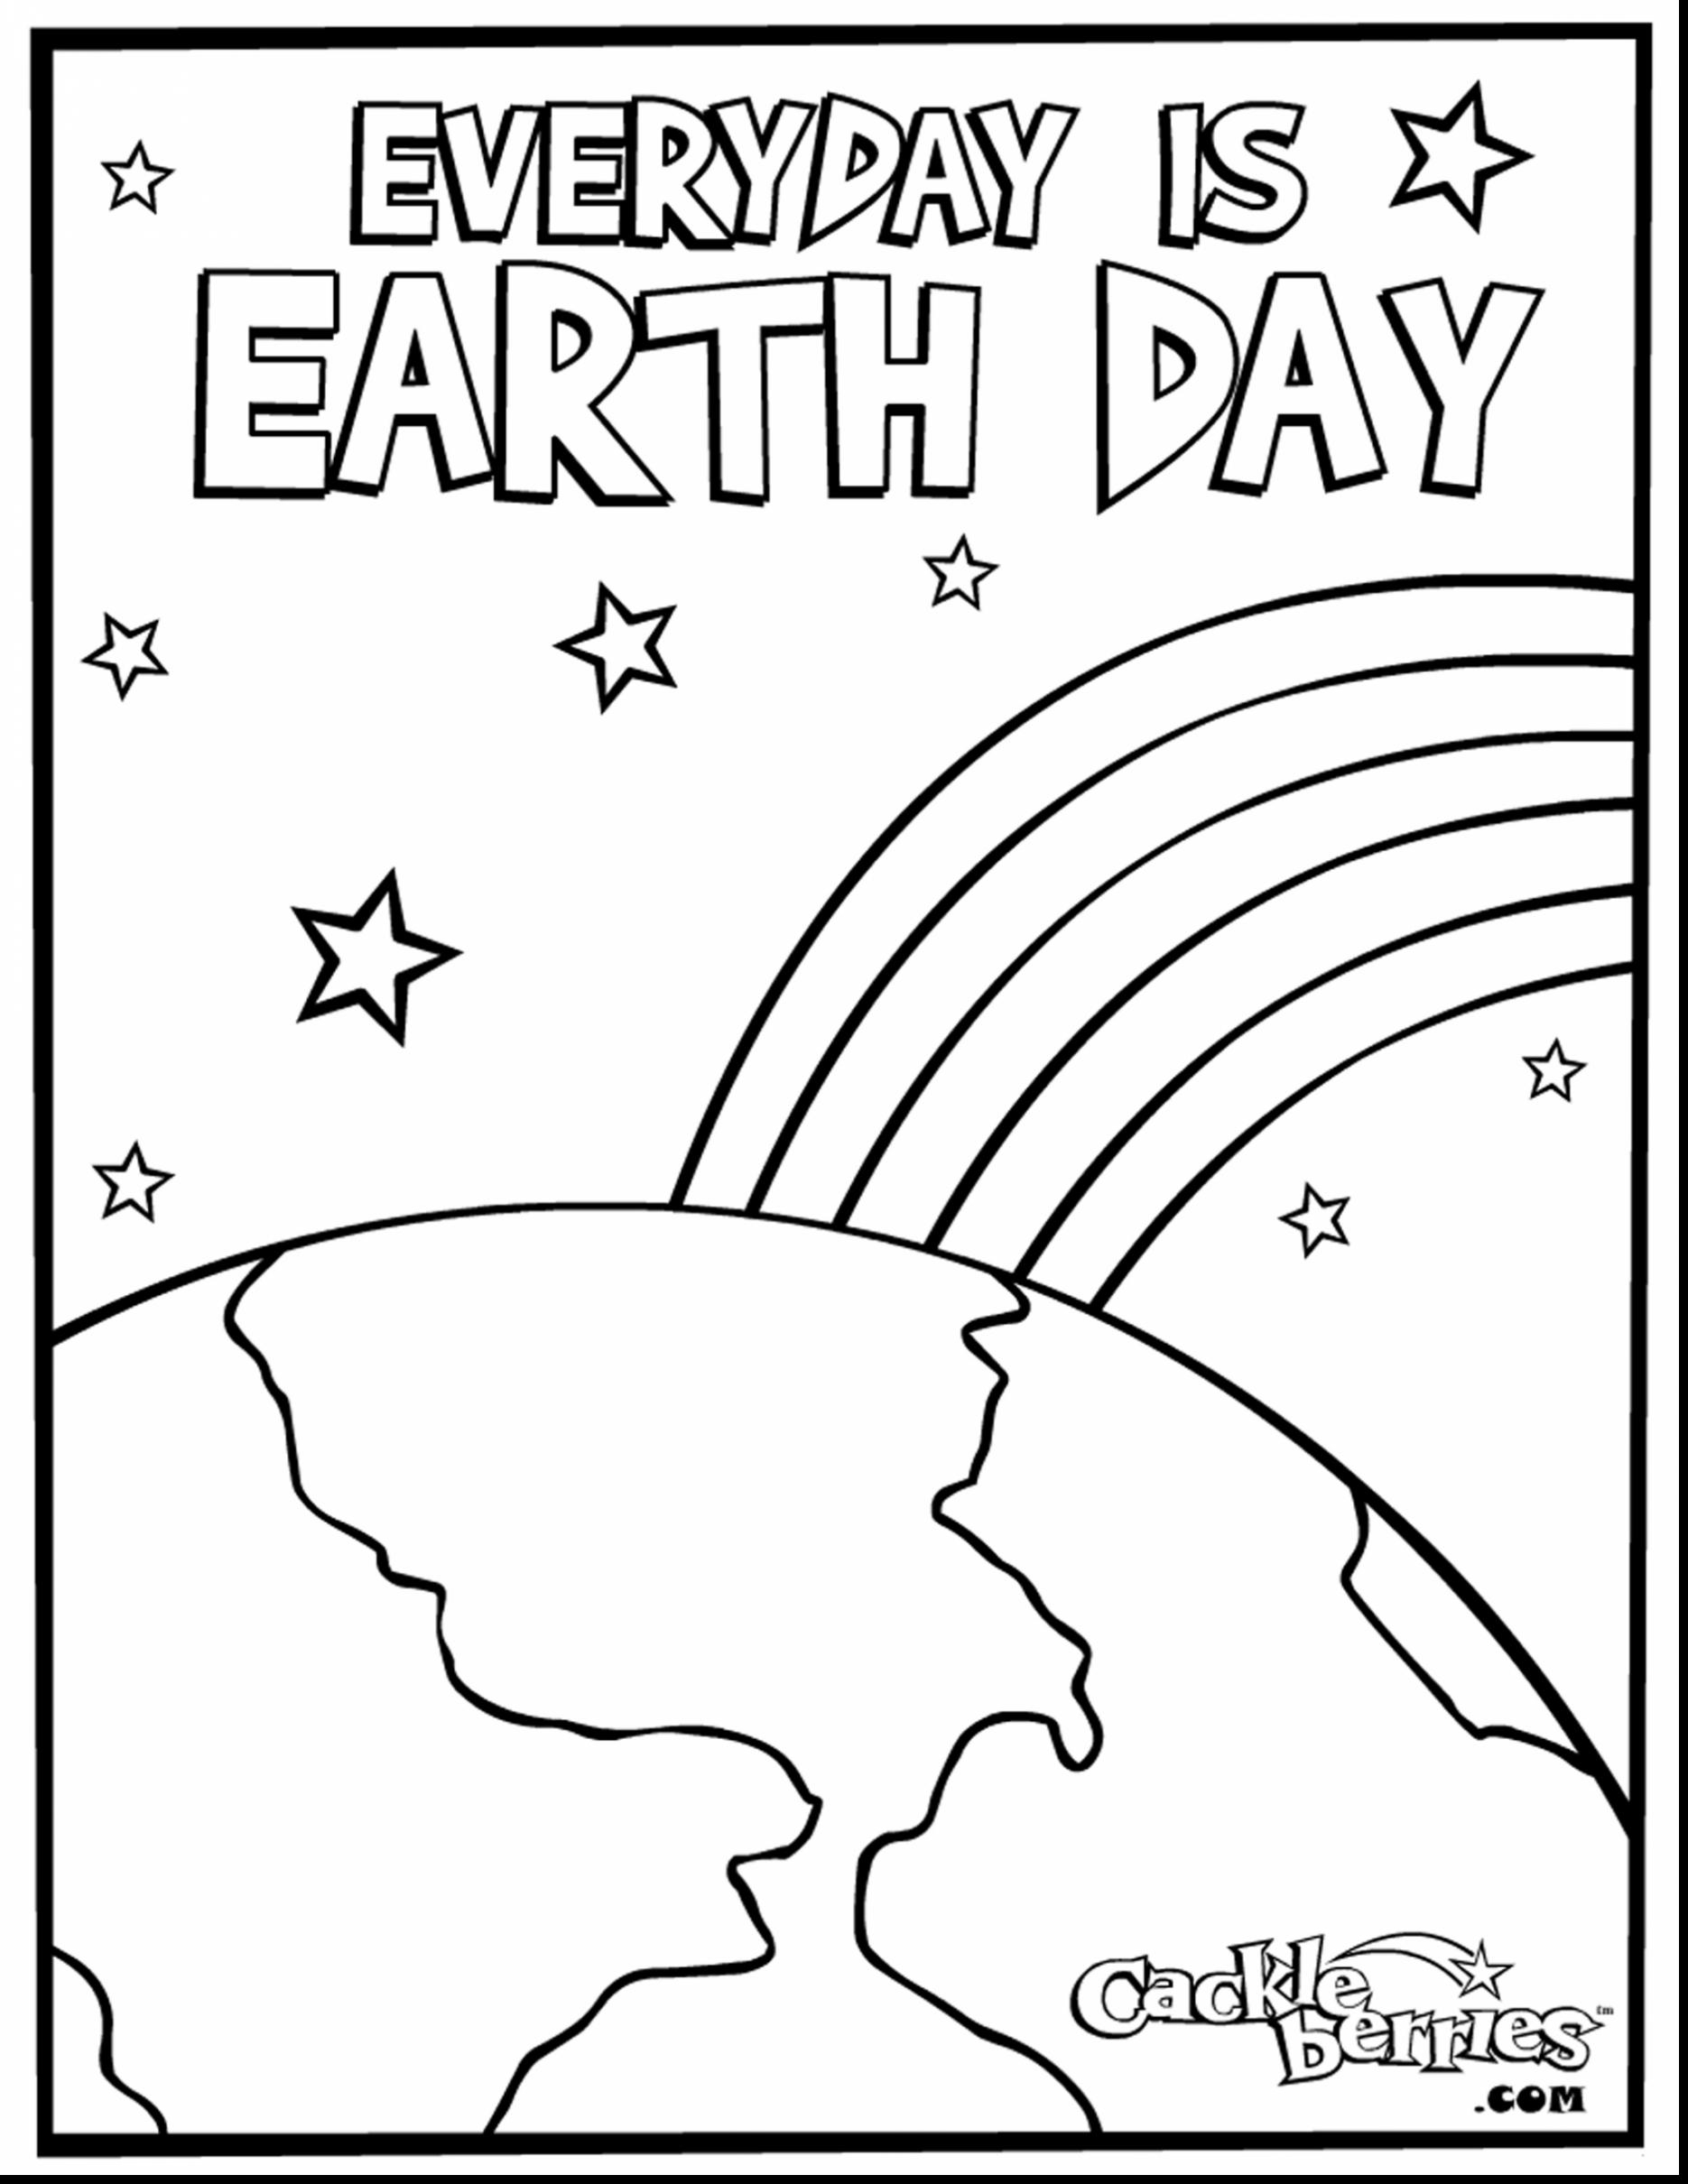 Earth Day Coloring Pages Coloring Ideas Free Printable Earth Day Coloring Pages Andities